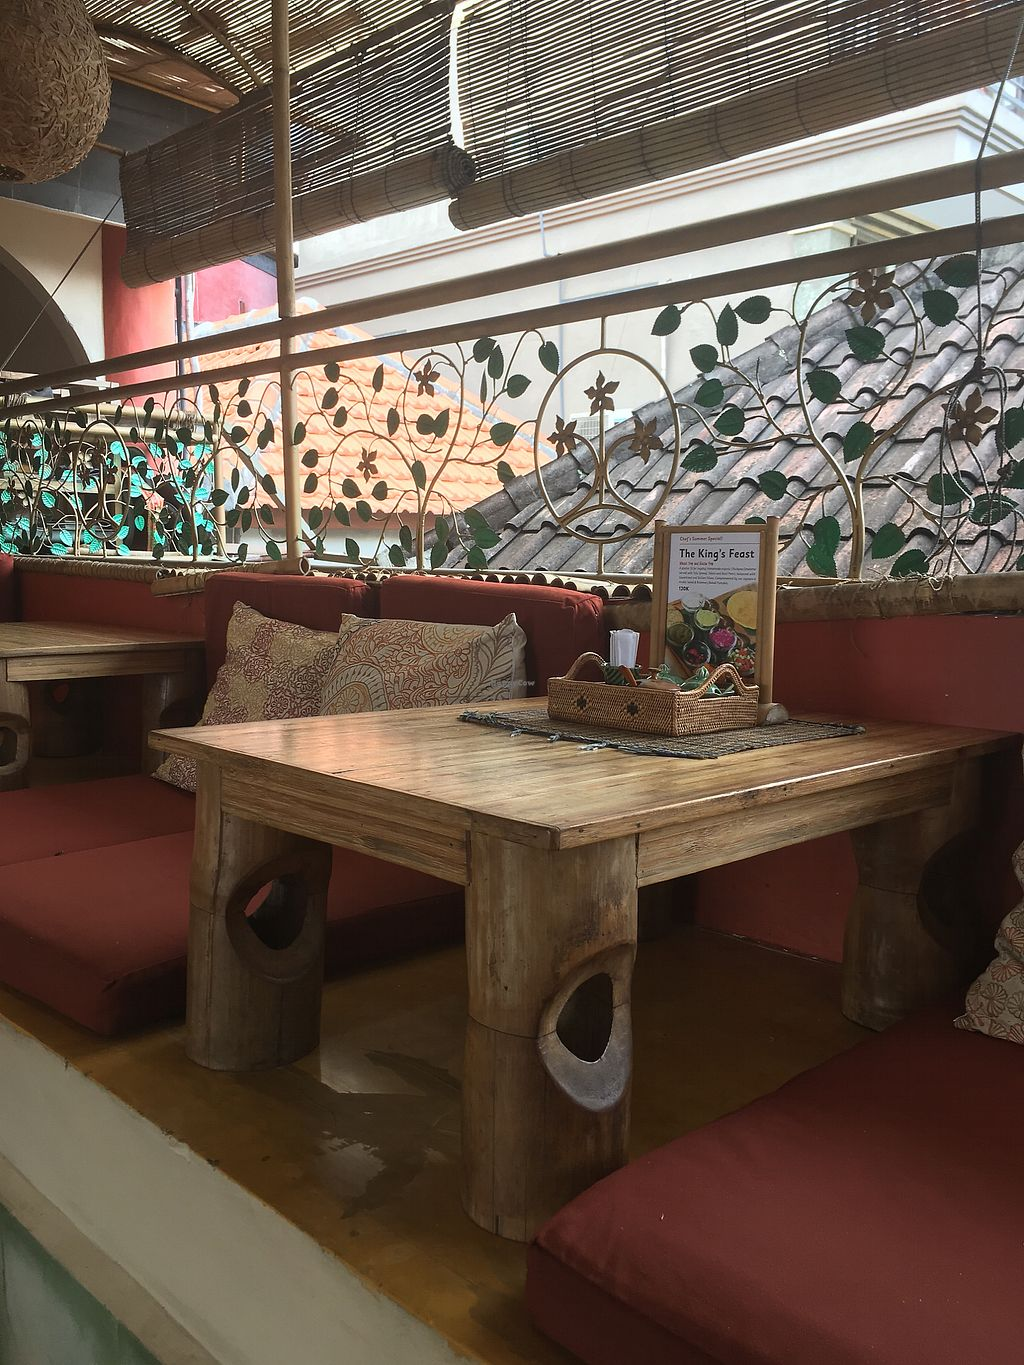 """Photo of Earth Cafe and Market - Ubud  by <a href=""""/members/profile/Lolaf"""">Lolaf</a> <br/> iré córner  <br/> September 1, 2017  - <a href='/contact/abuse/image/32487/299605'>Report</a>"""